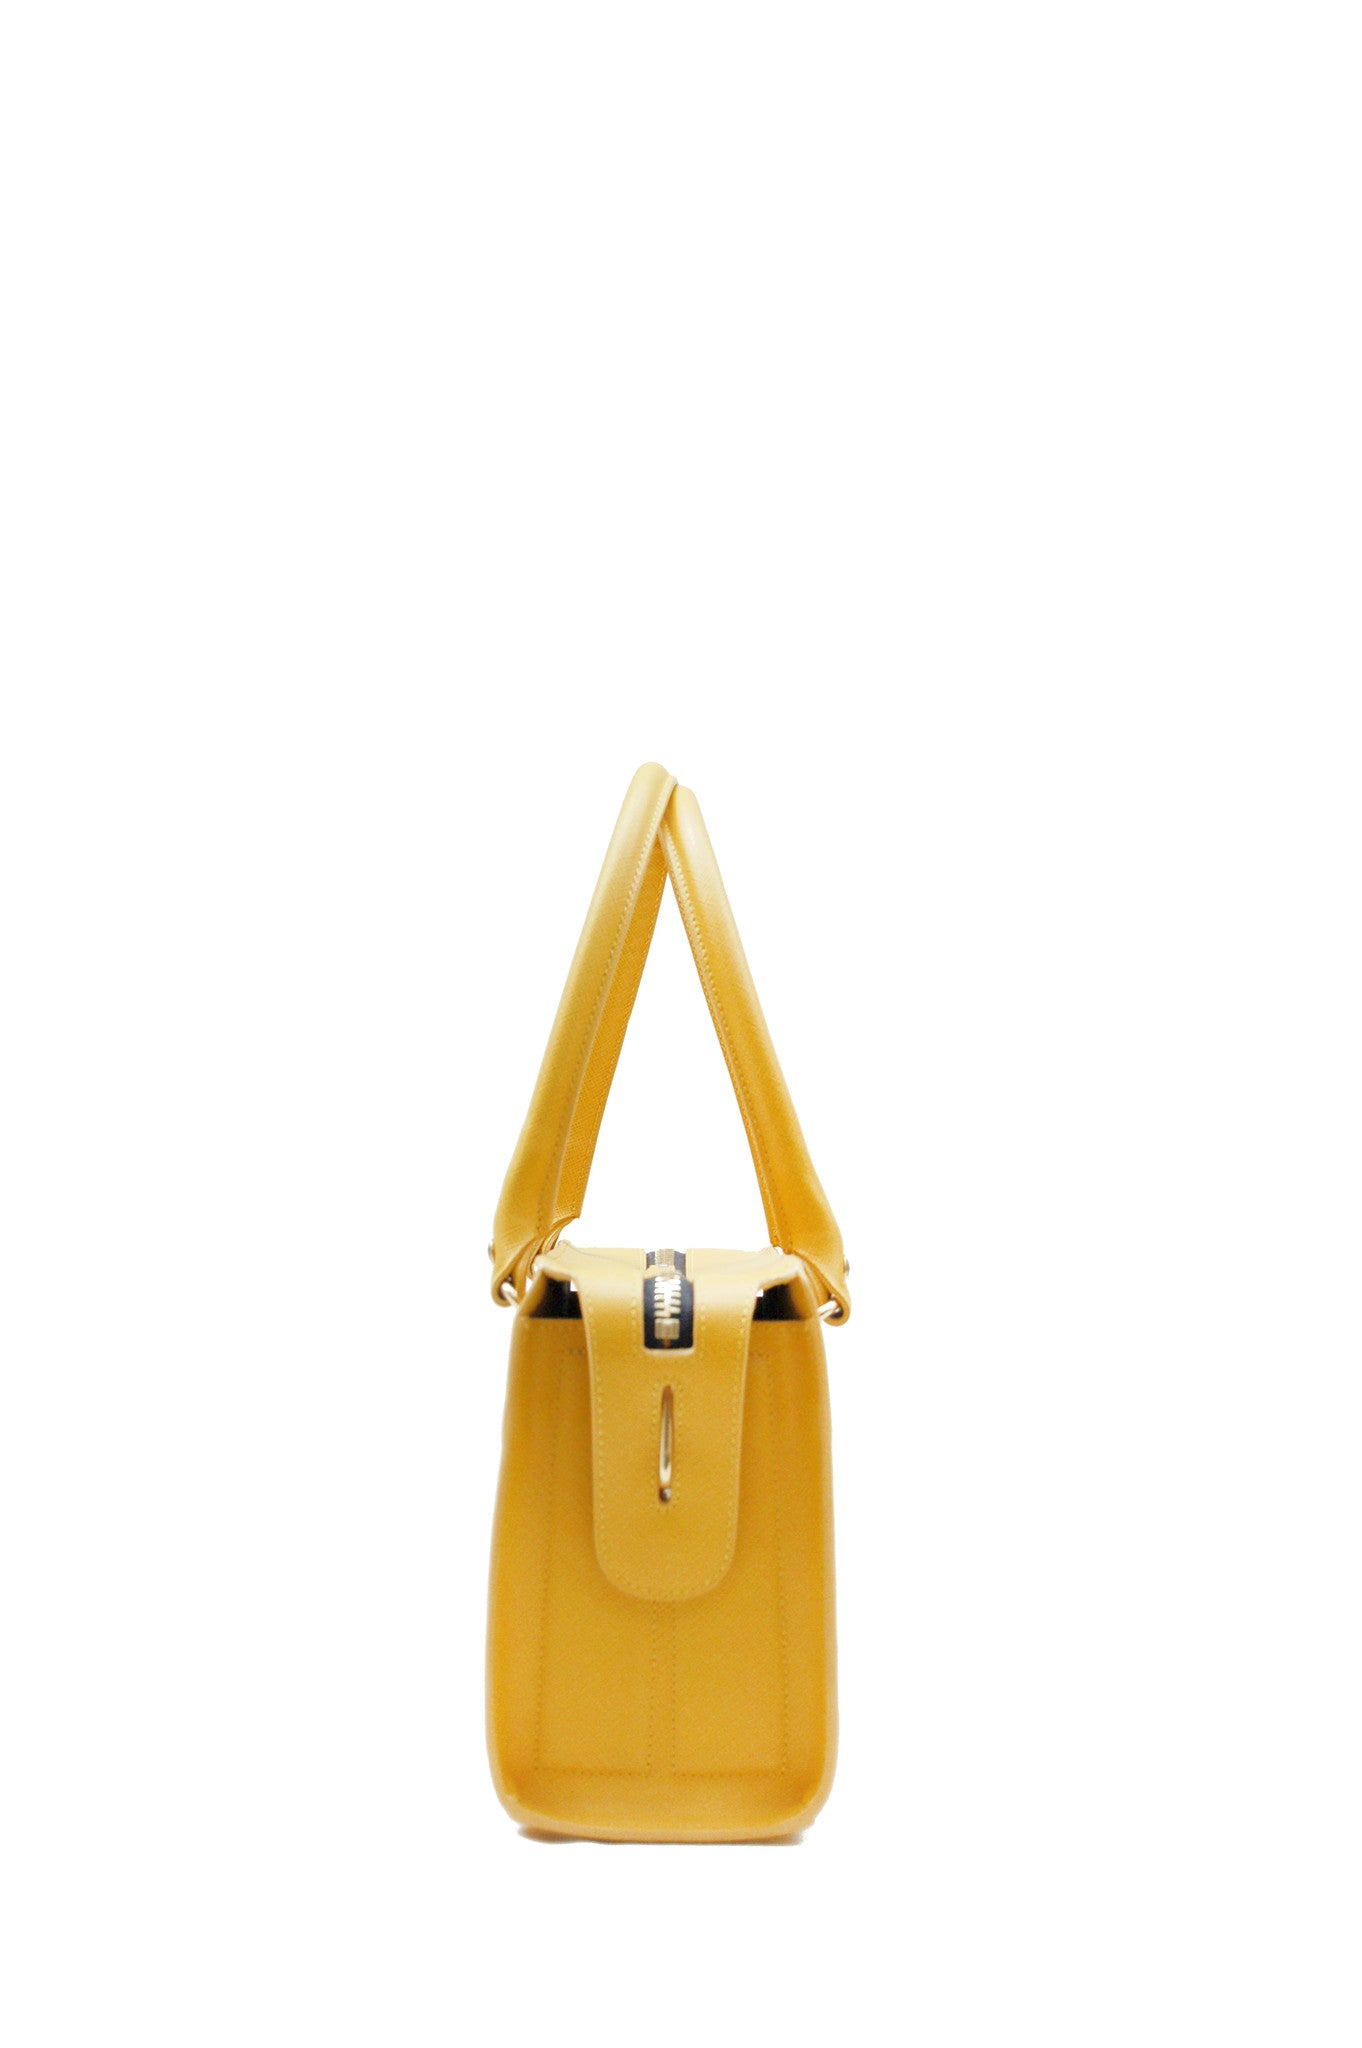 Wendee Ou: Austen structured bag yellow | Bags > Totes,Bags -  Hiphunters Shop